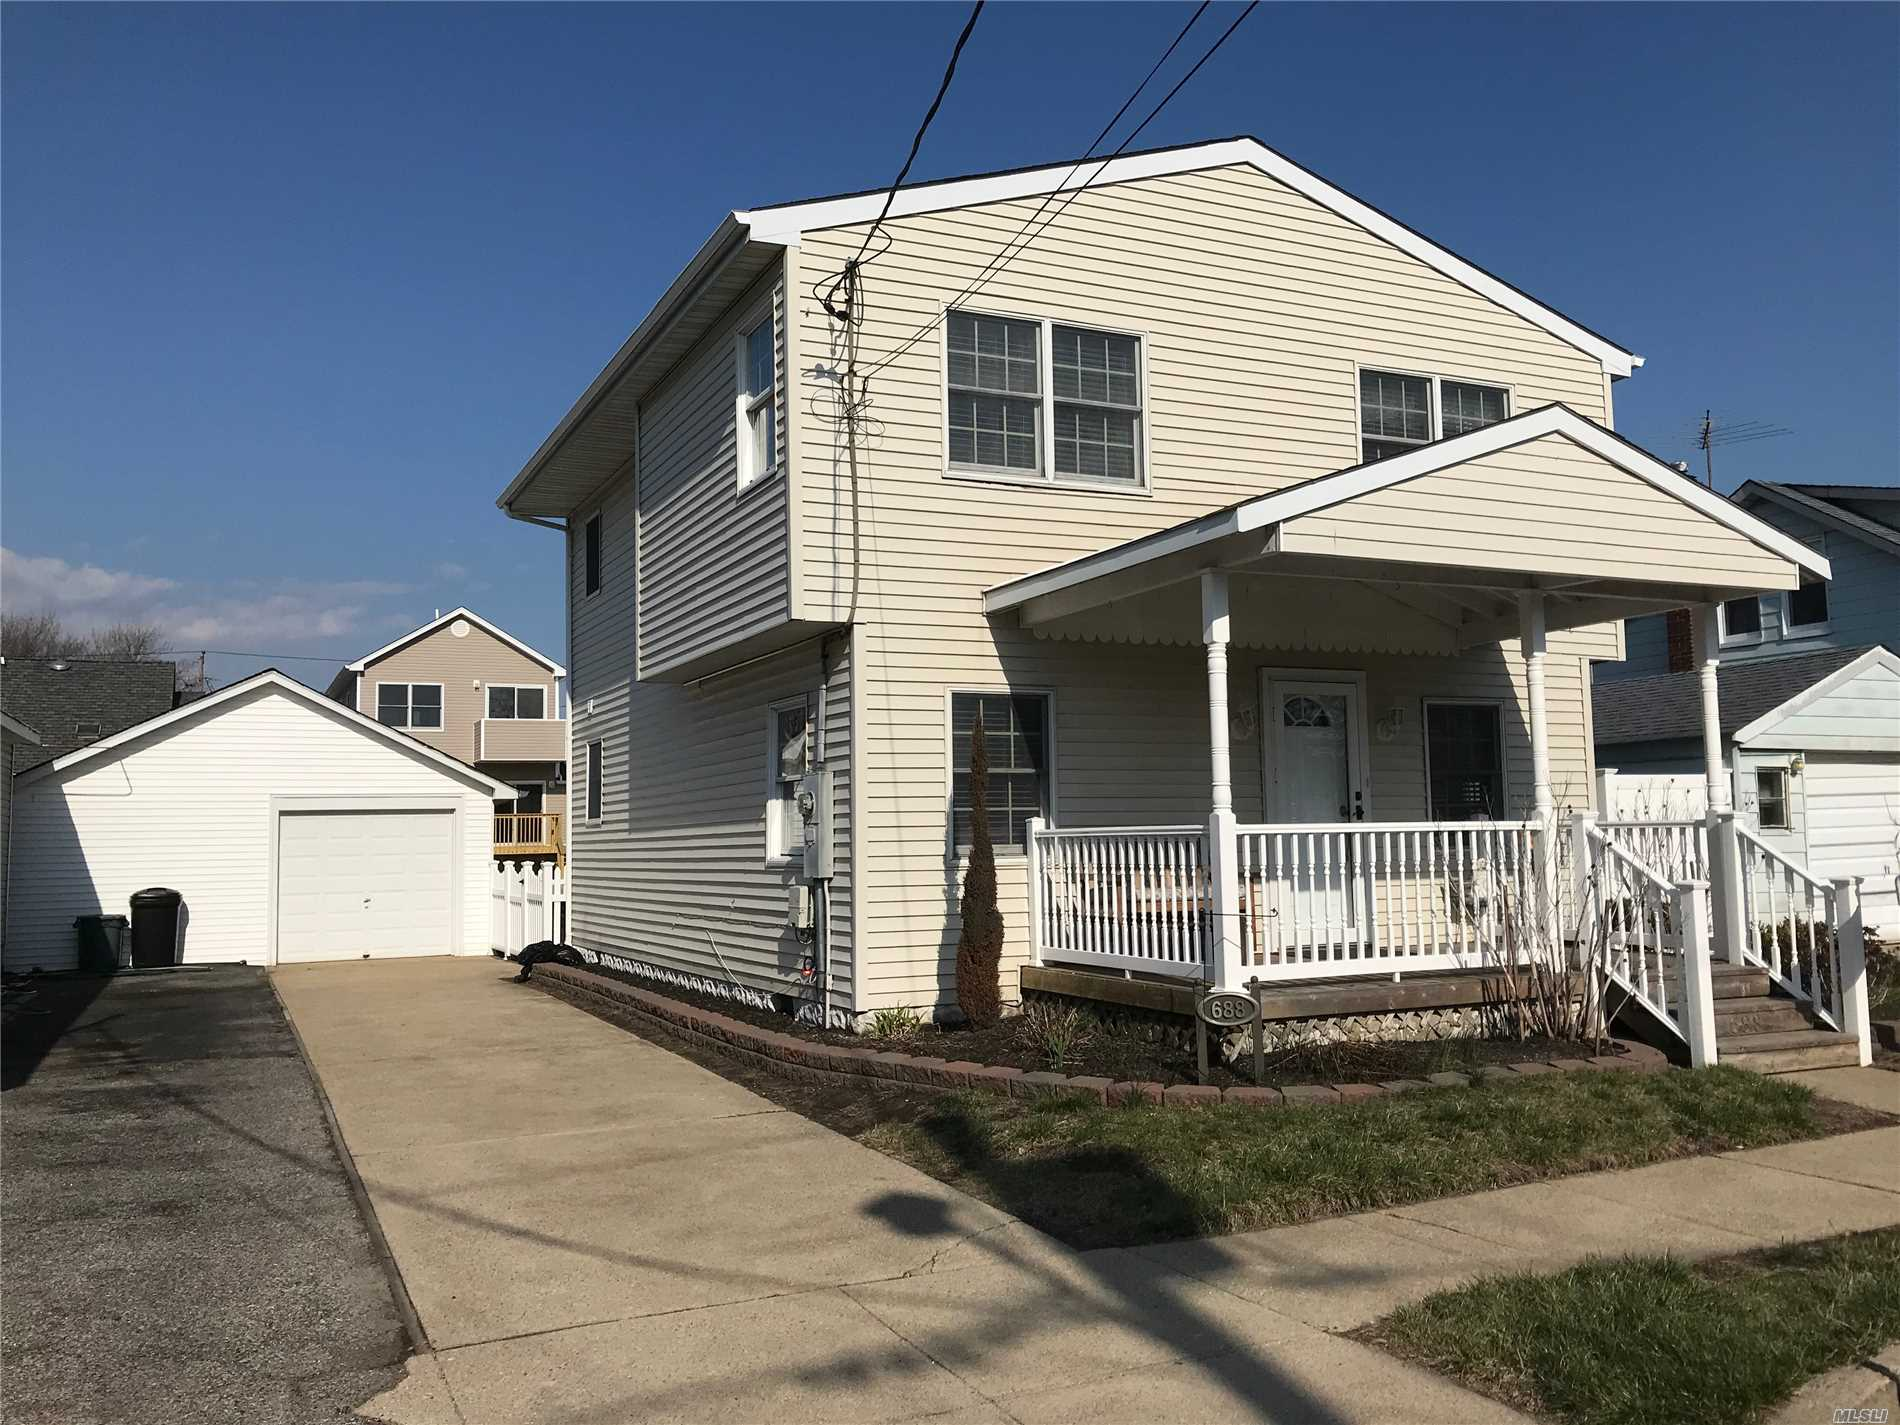 Move In Ready, Beautiful Colonial With 3 Extra Large Bedrooms Up Stairs, Wood Floors, 4th Bedroom On 1st Floor Possible Dining Room. Yard Fully Fenced In, High Hats Throughout, 200 Amp Electric.